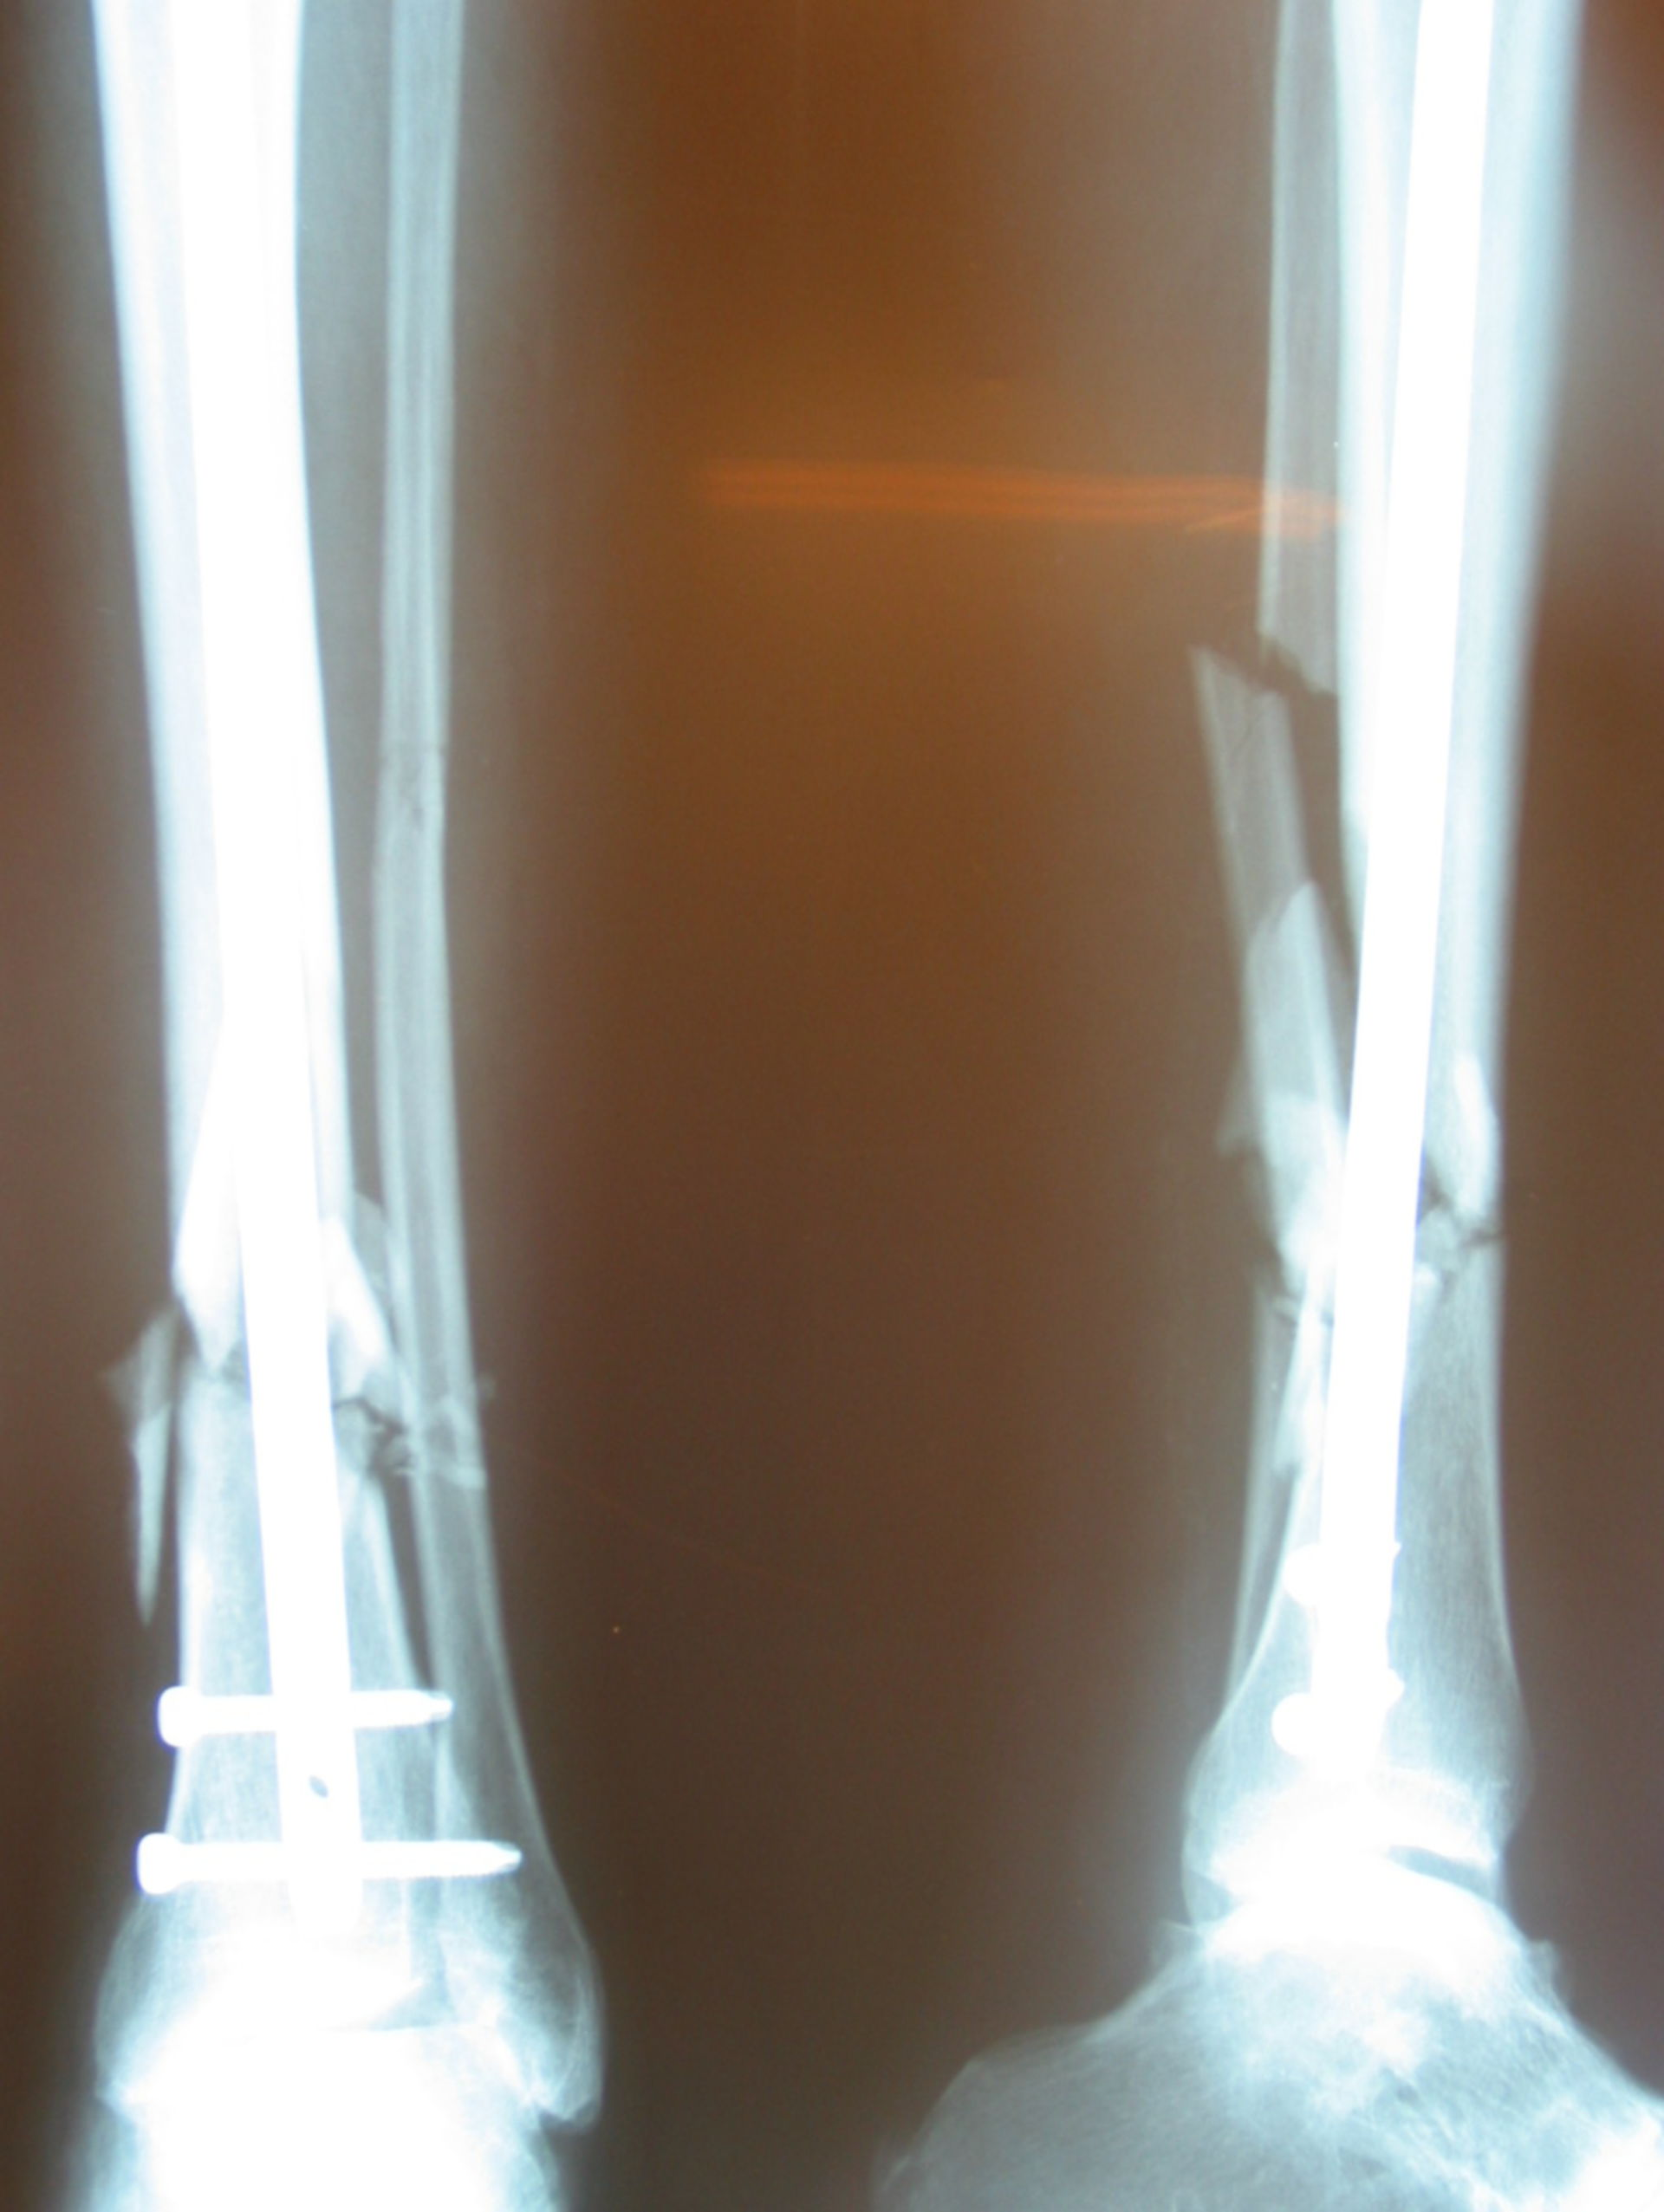 Nailing of lower leg fracture